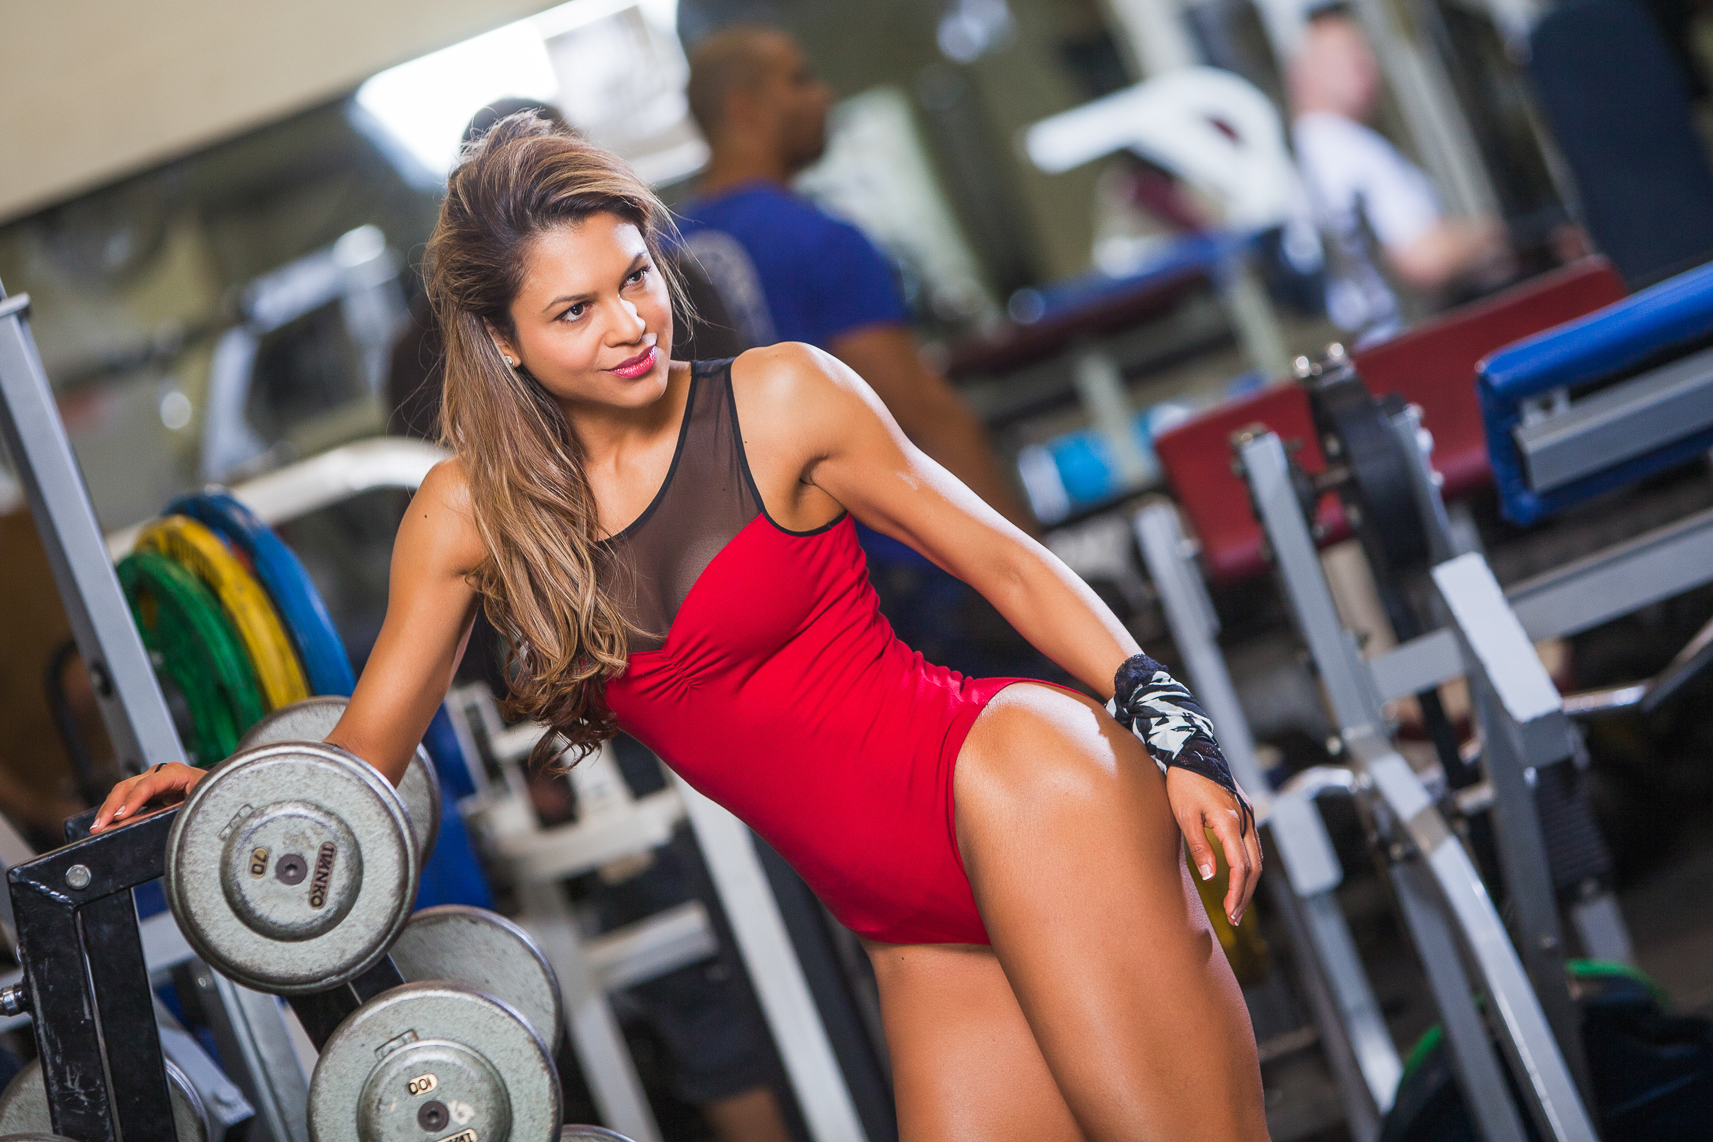 How can women build lean muscle mass?